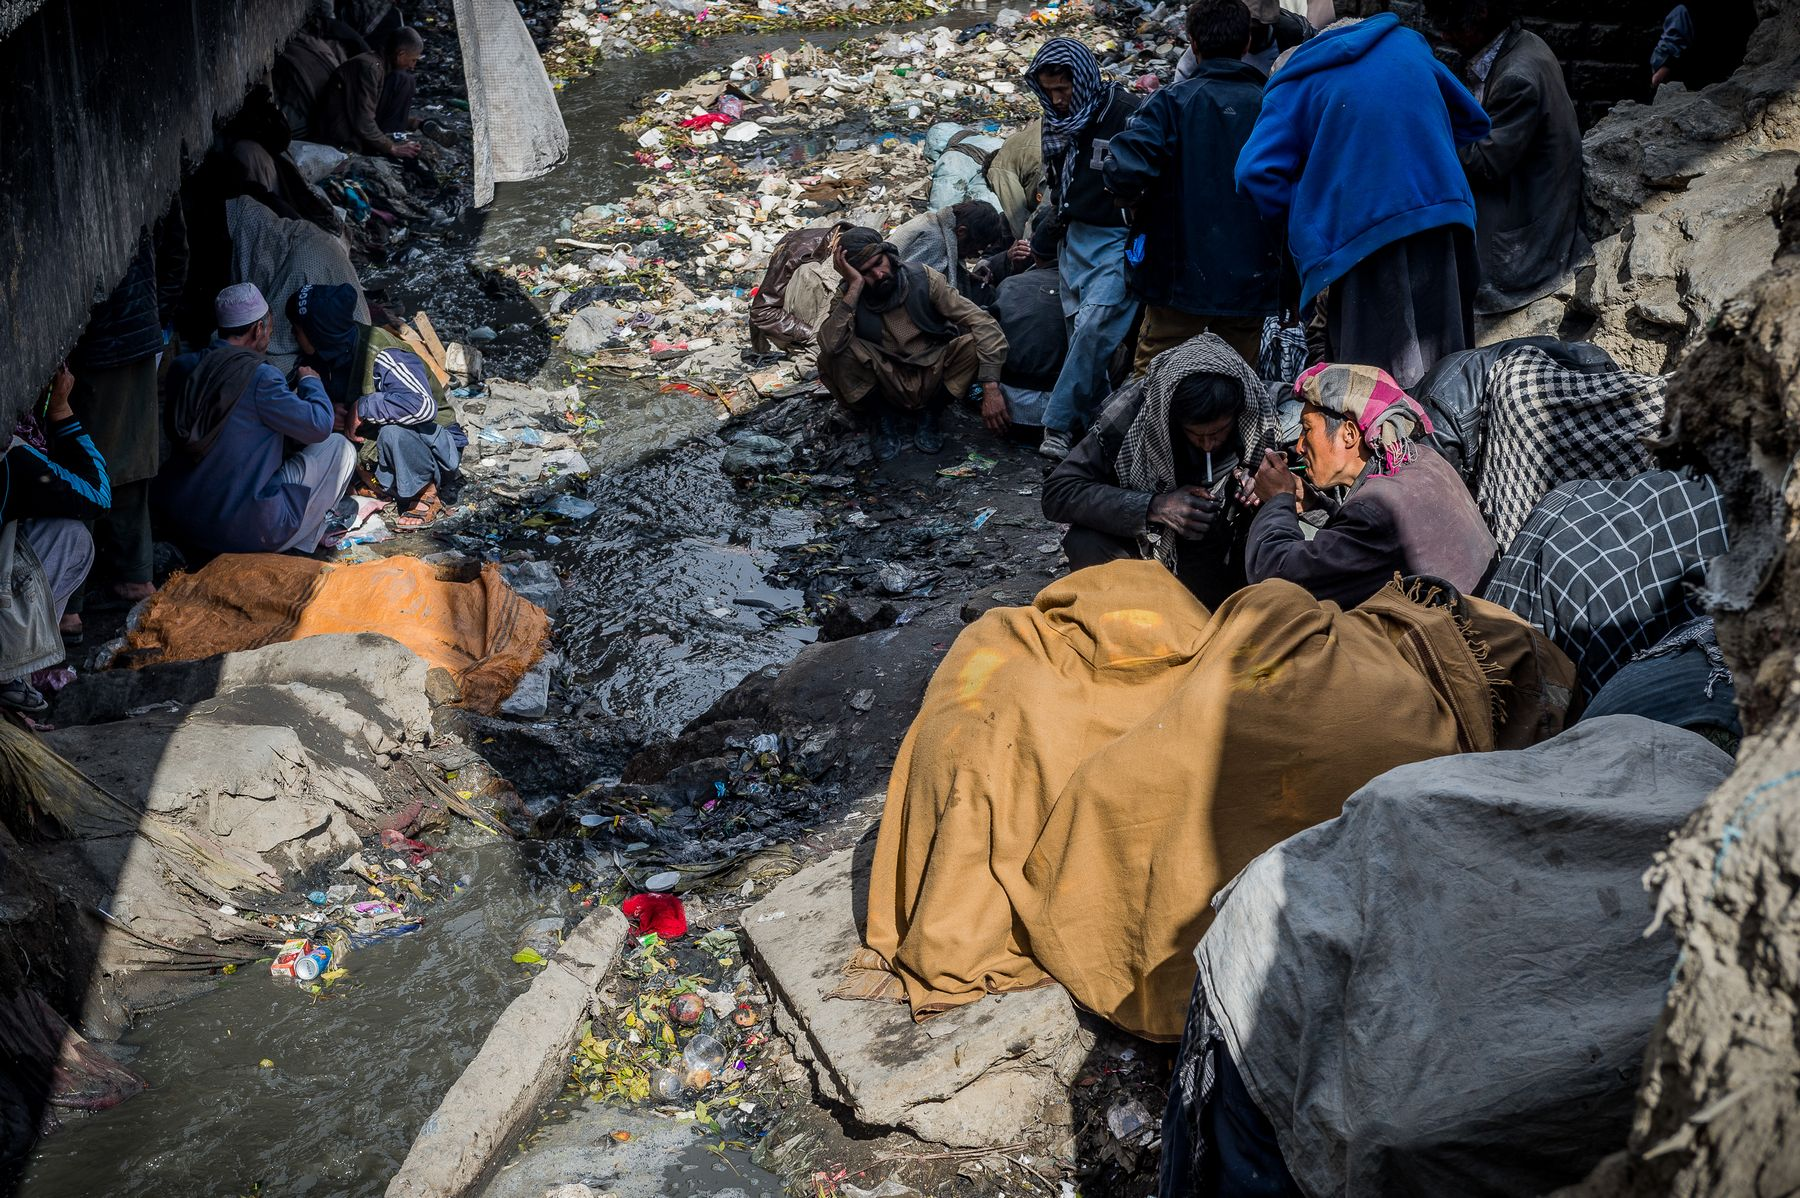 03 November 2015 - Kabul, Afghanistan. Daily life in the capital. Drug users find shelter under a bridge near the main bazaar of the city. The country is facing a pivotal period in its history as International armies such as US and Italy decided not to leave the country but to prolong the ongoing war against Talibans in support of the Afghan official Government.